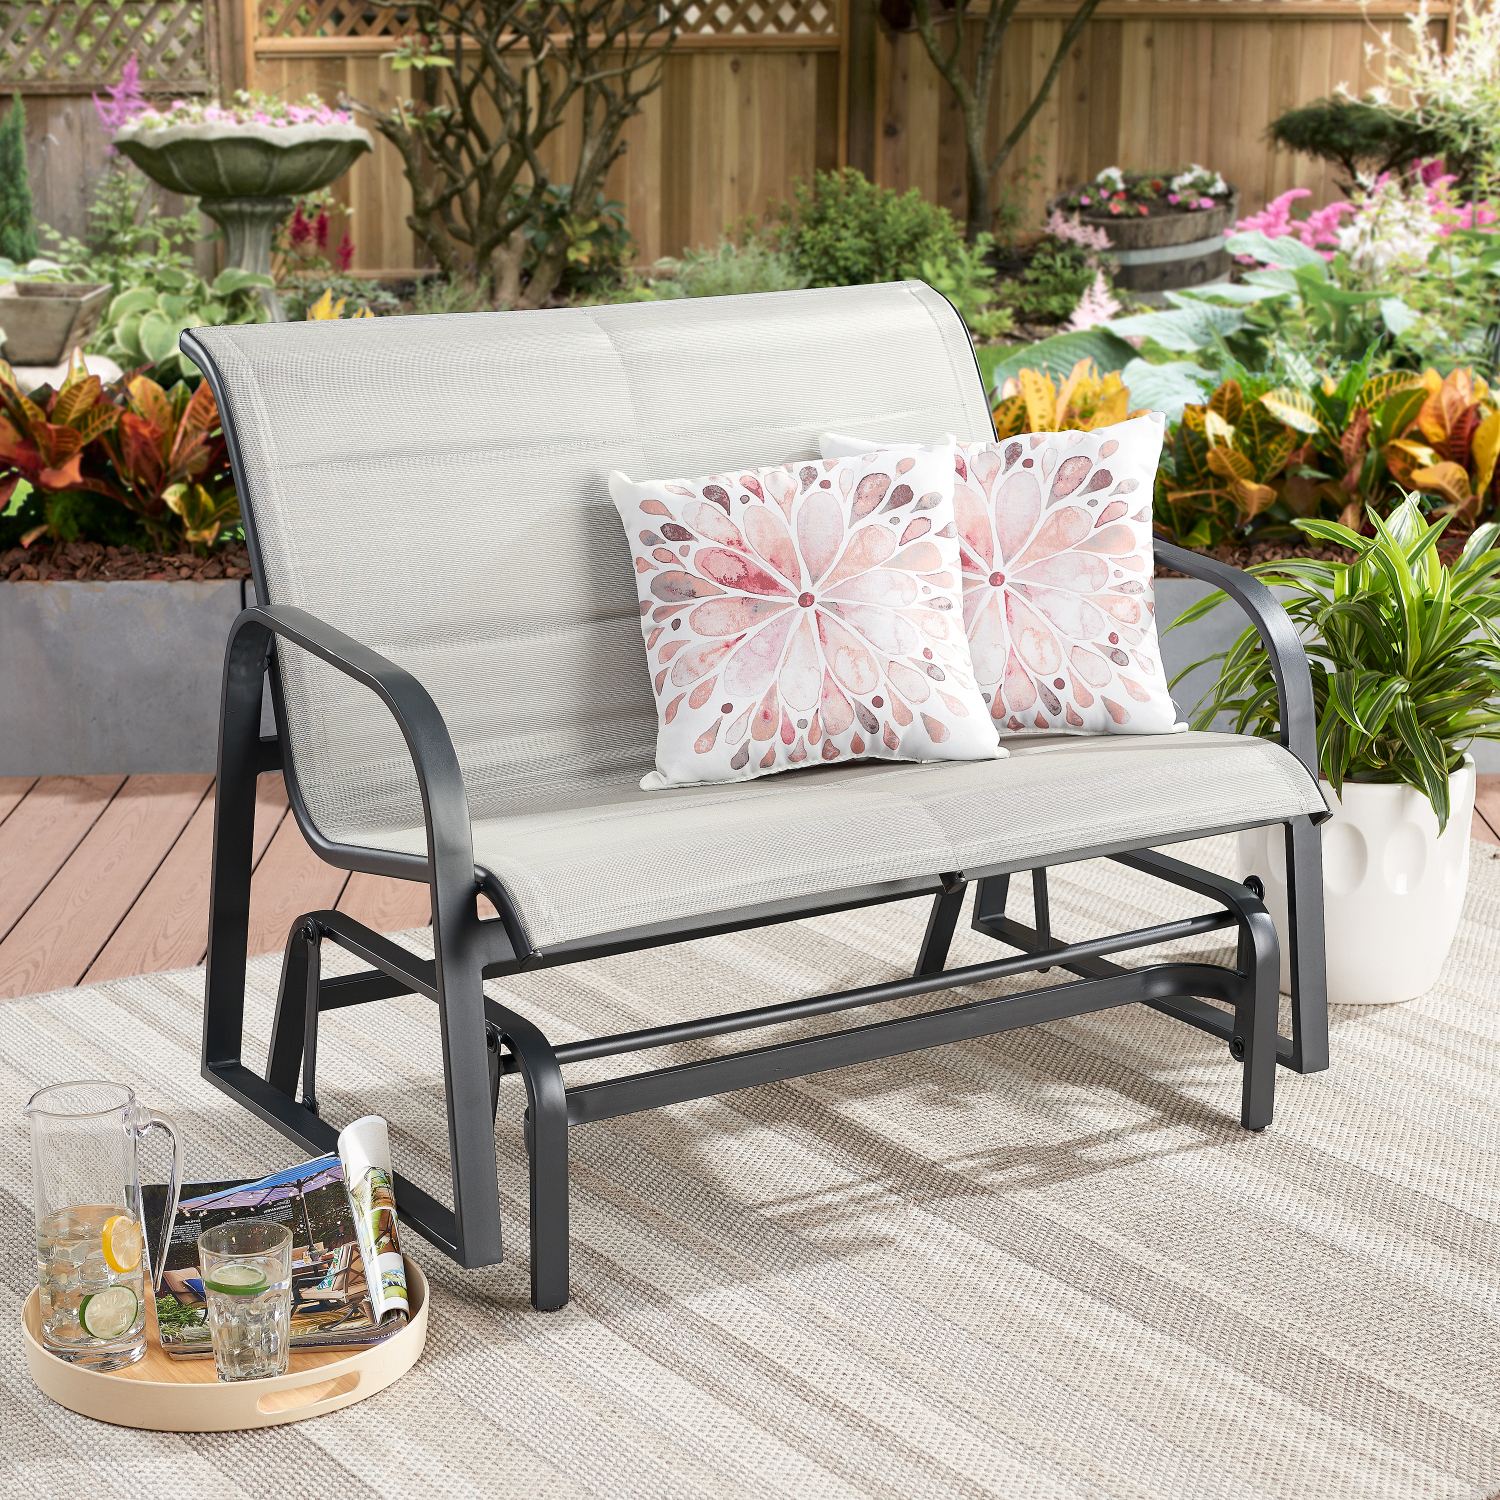 Recent Details About Montrose Padded Sling Glider Bench Outdoor Garden Patio Porch Furniture Chair In Padded Sling Loveseats With Cushions (View 14 of 30)